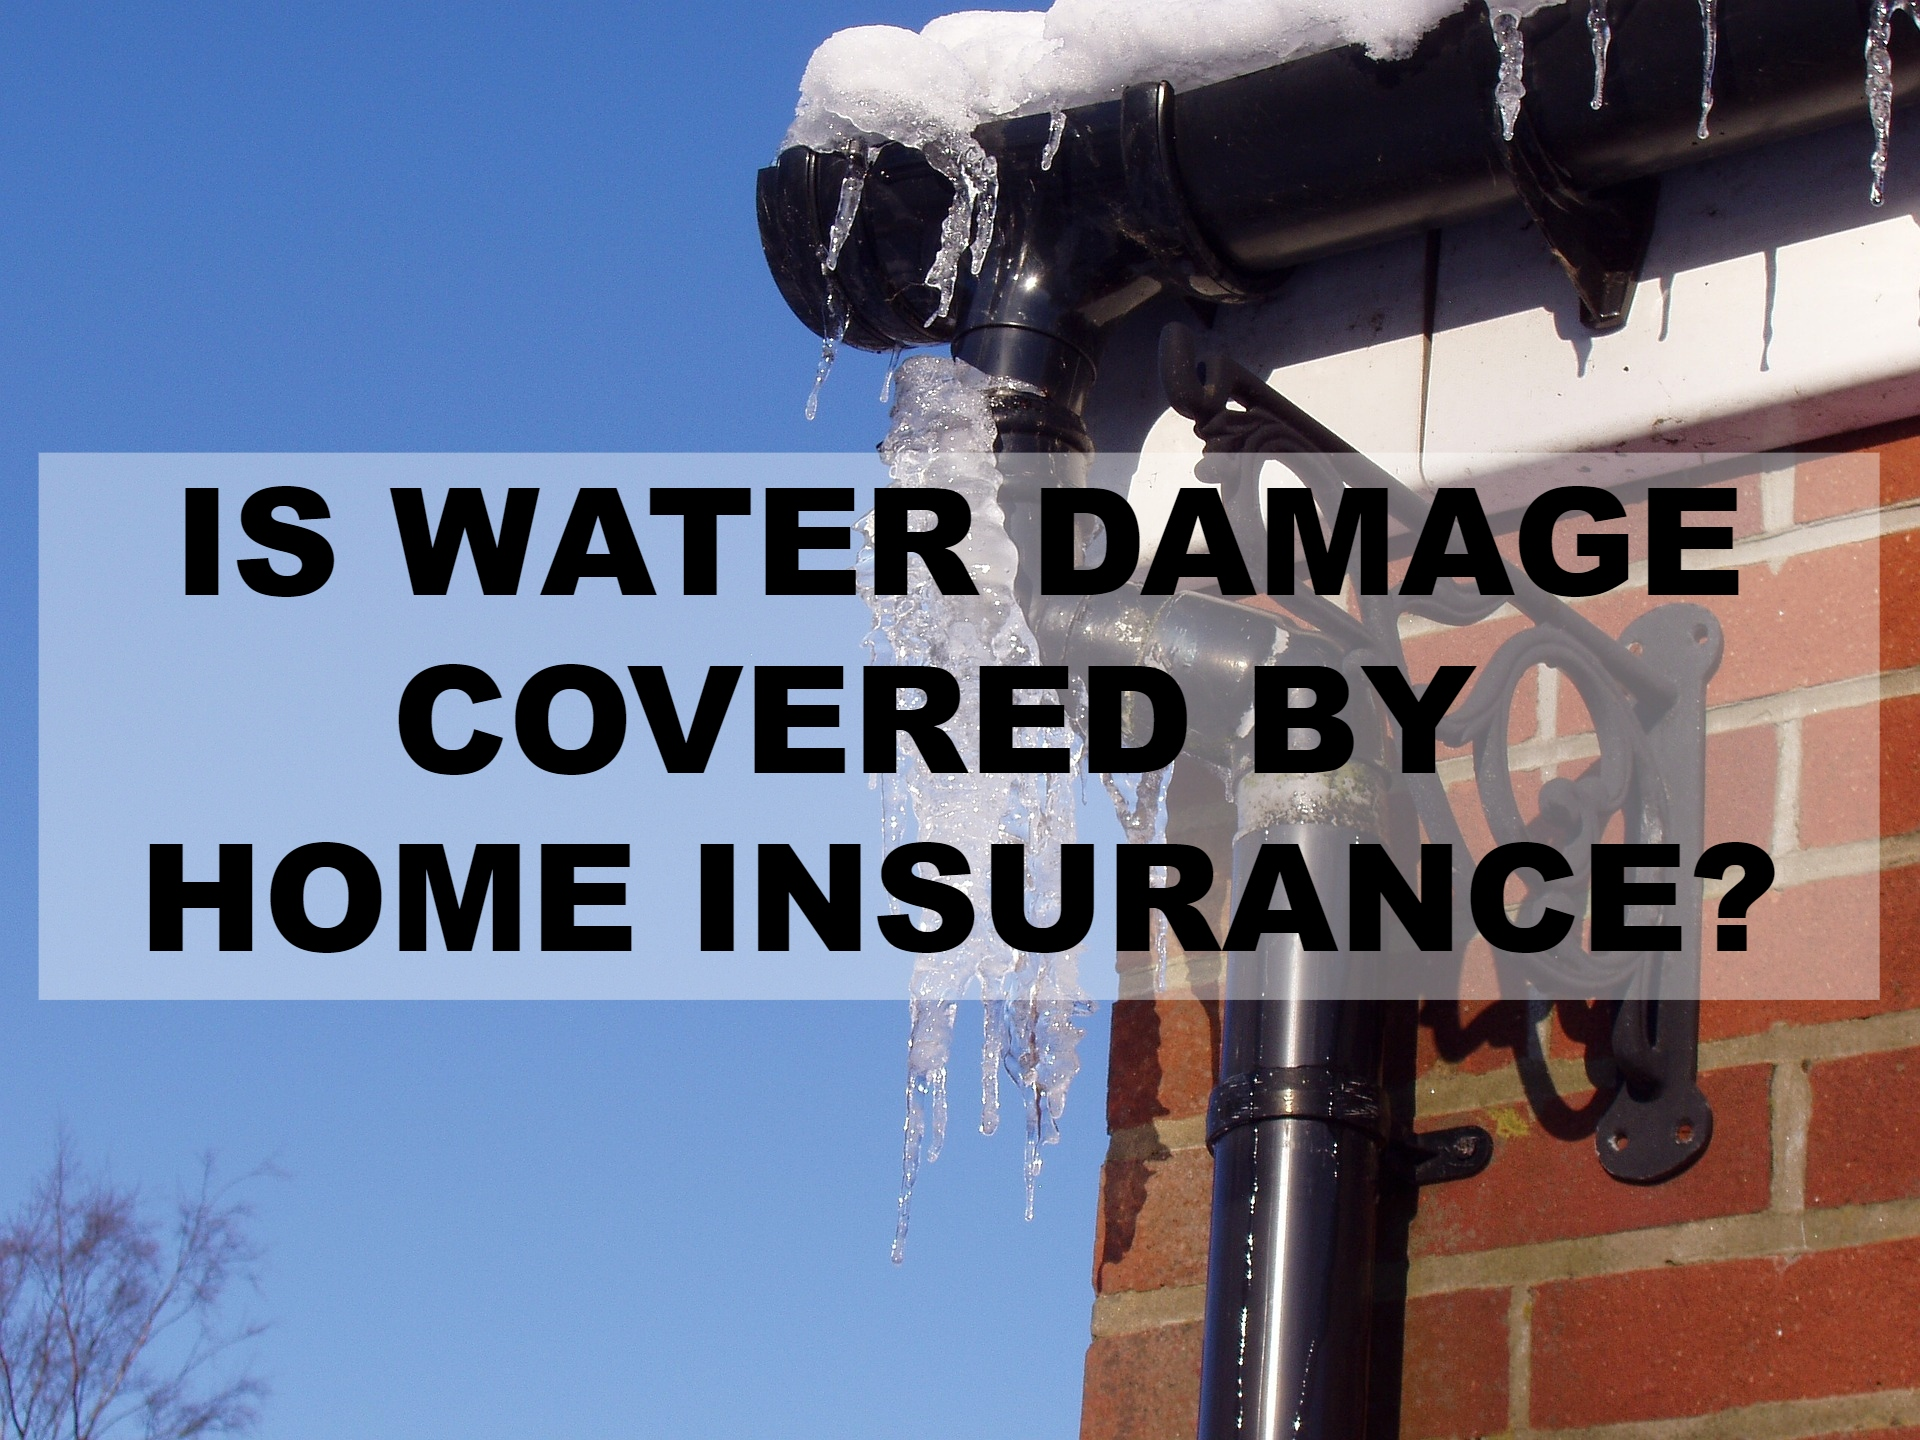 is water damage covered by home insurance